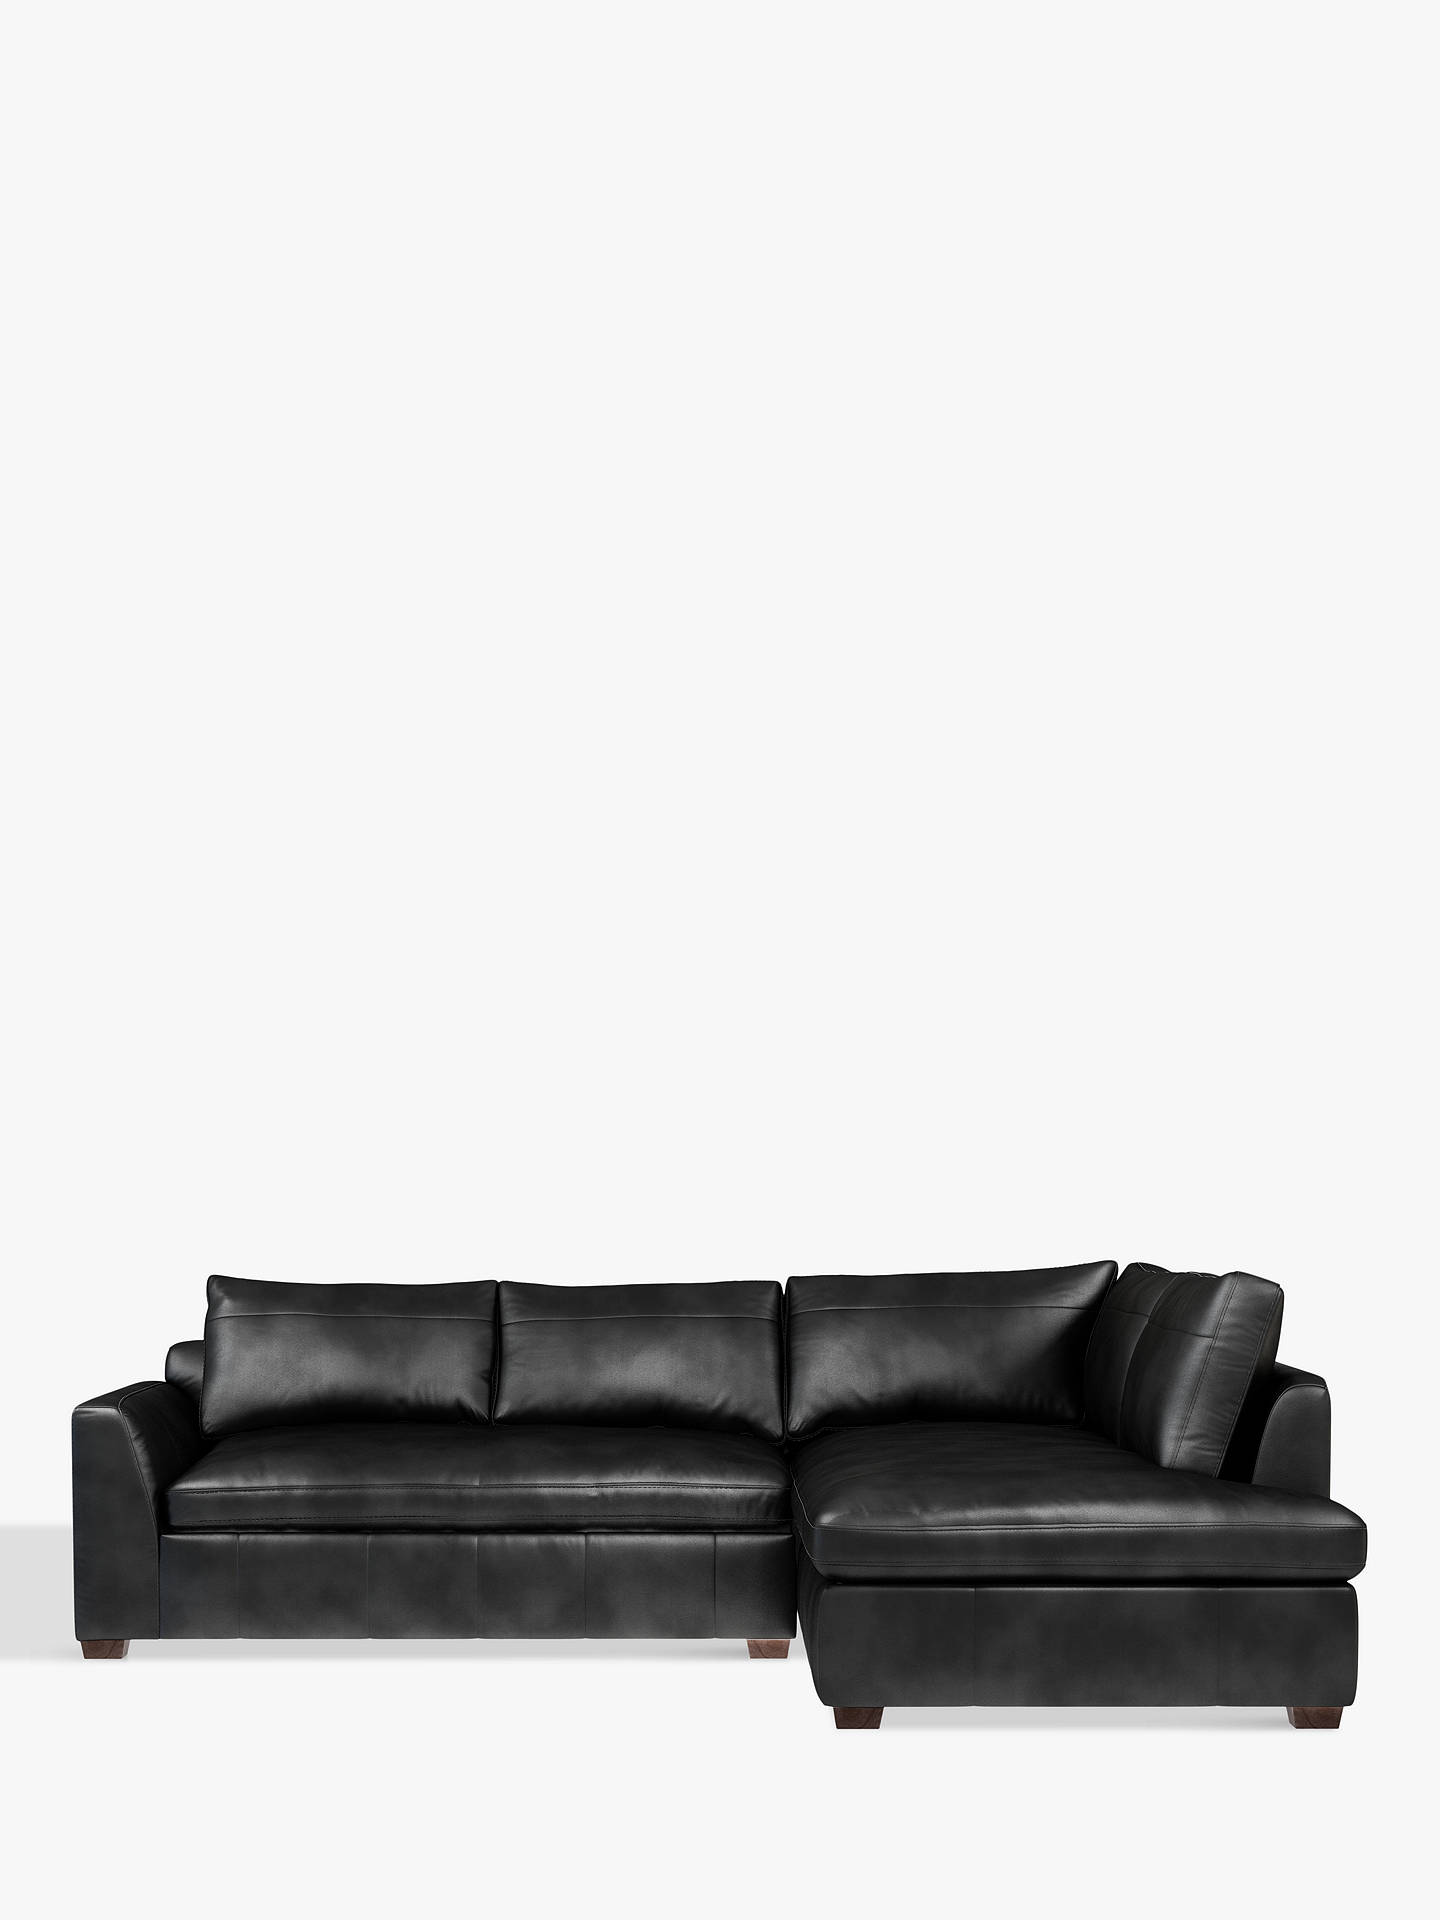 John Lewis & Partners Tortona Leather RHF Chaise End Sofa, Contempo Black